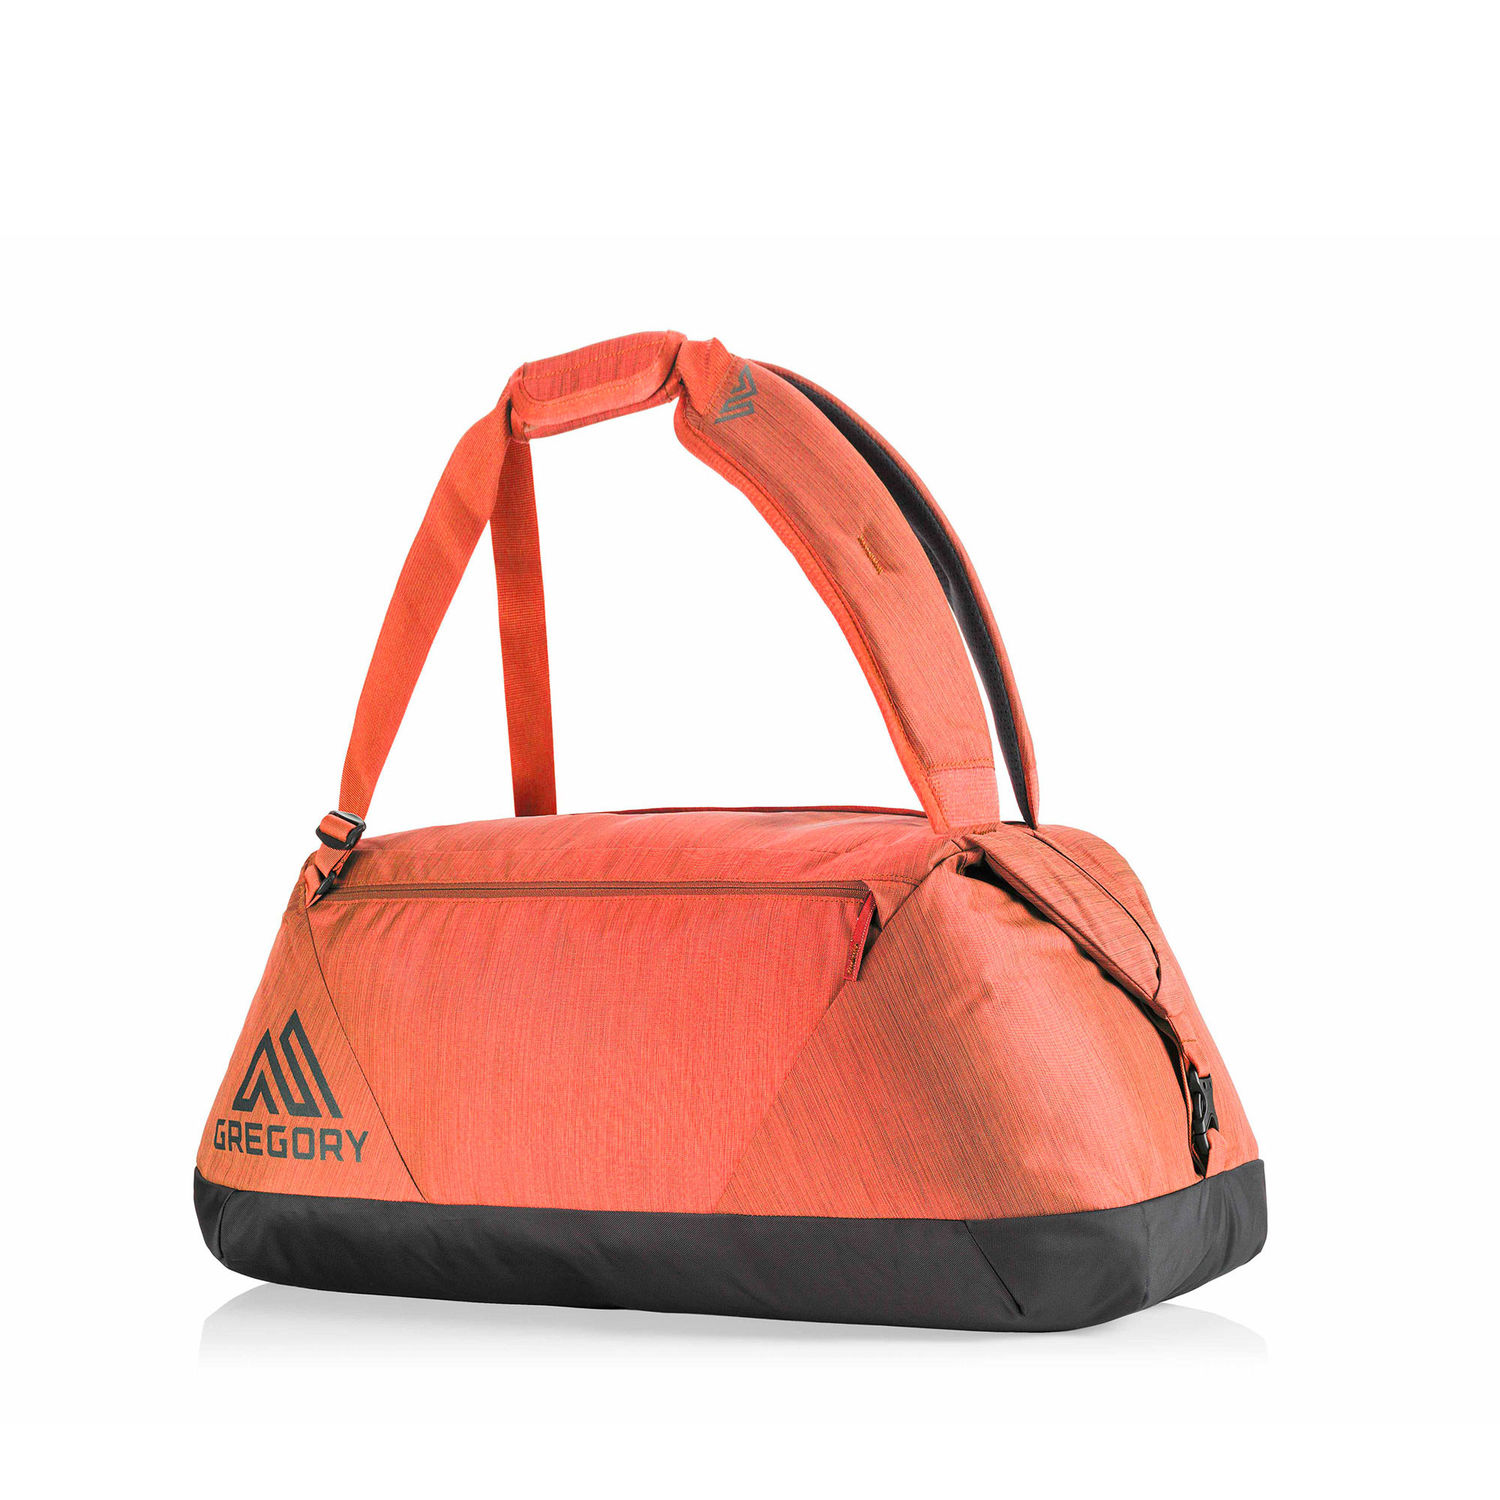 GREGORY Stash Duffle 95 L - Autumn Rust